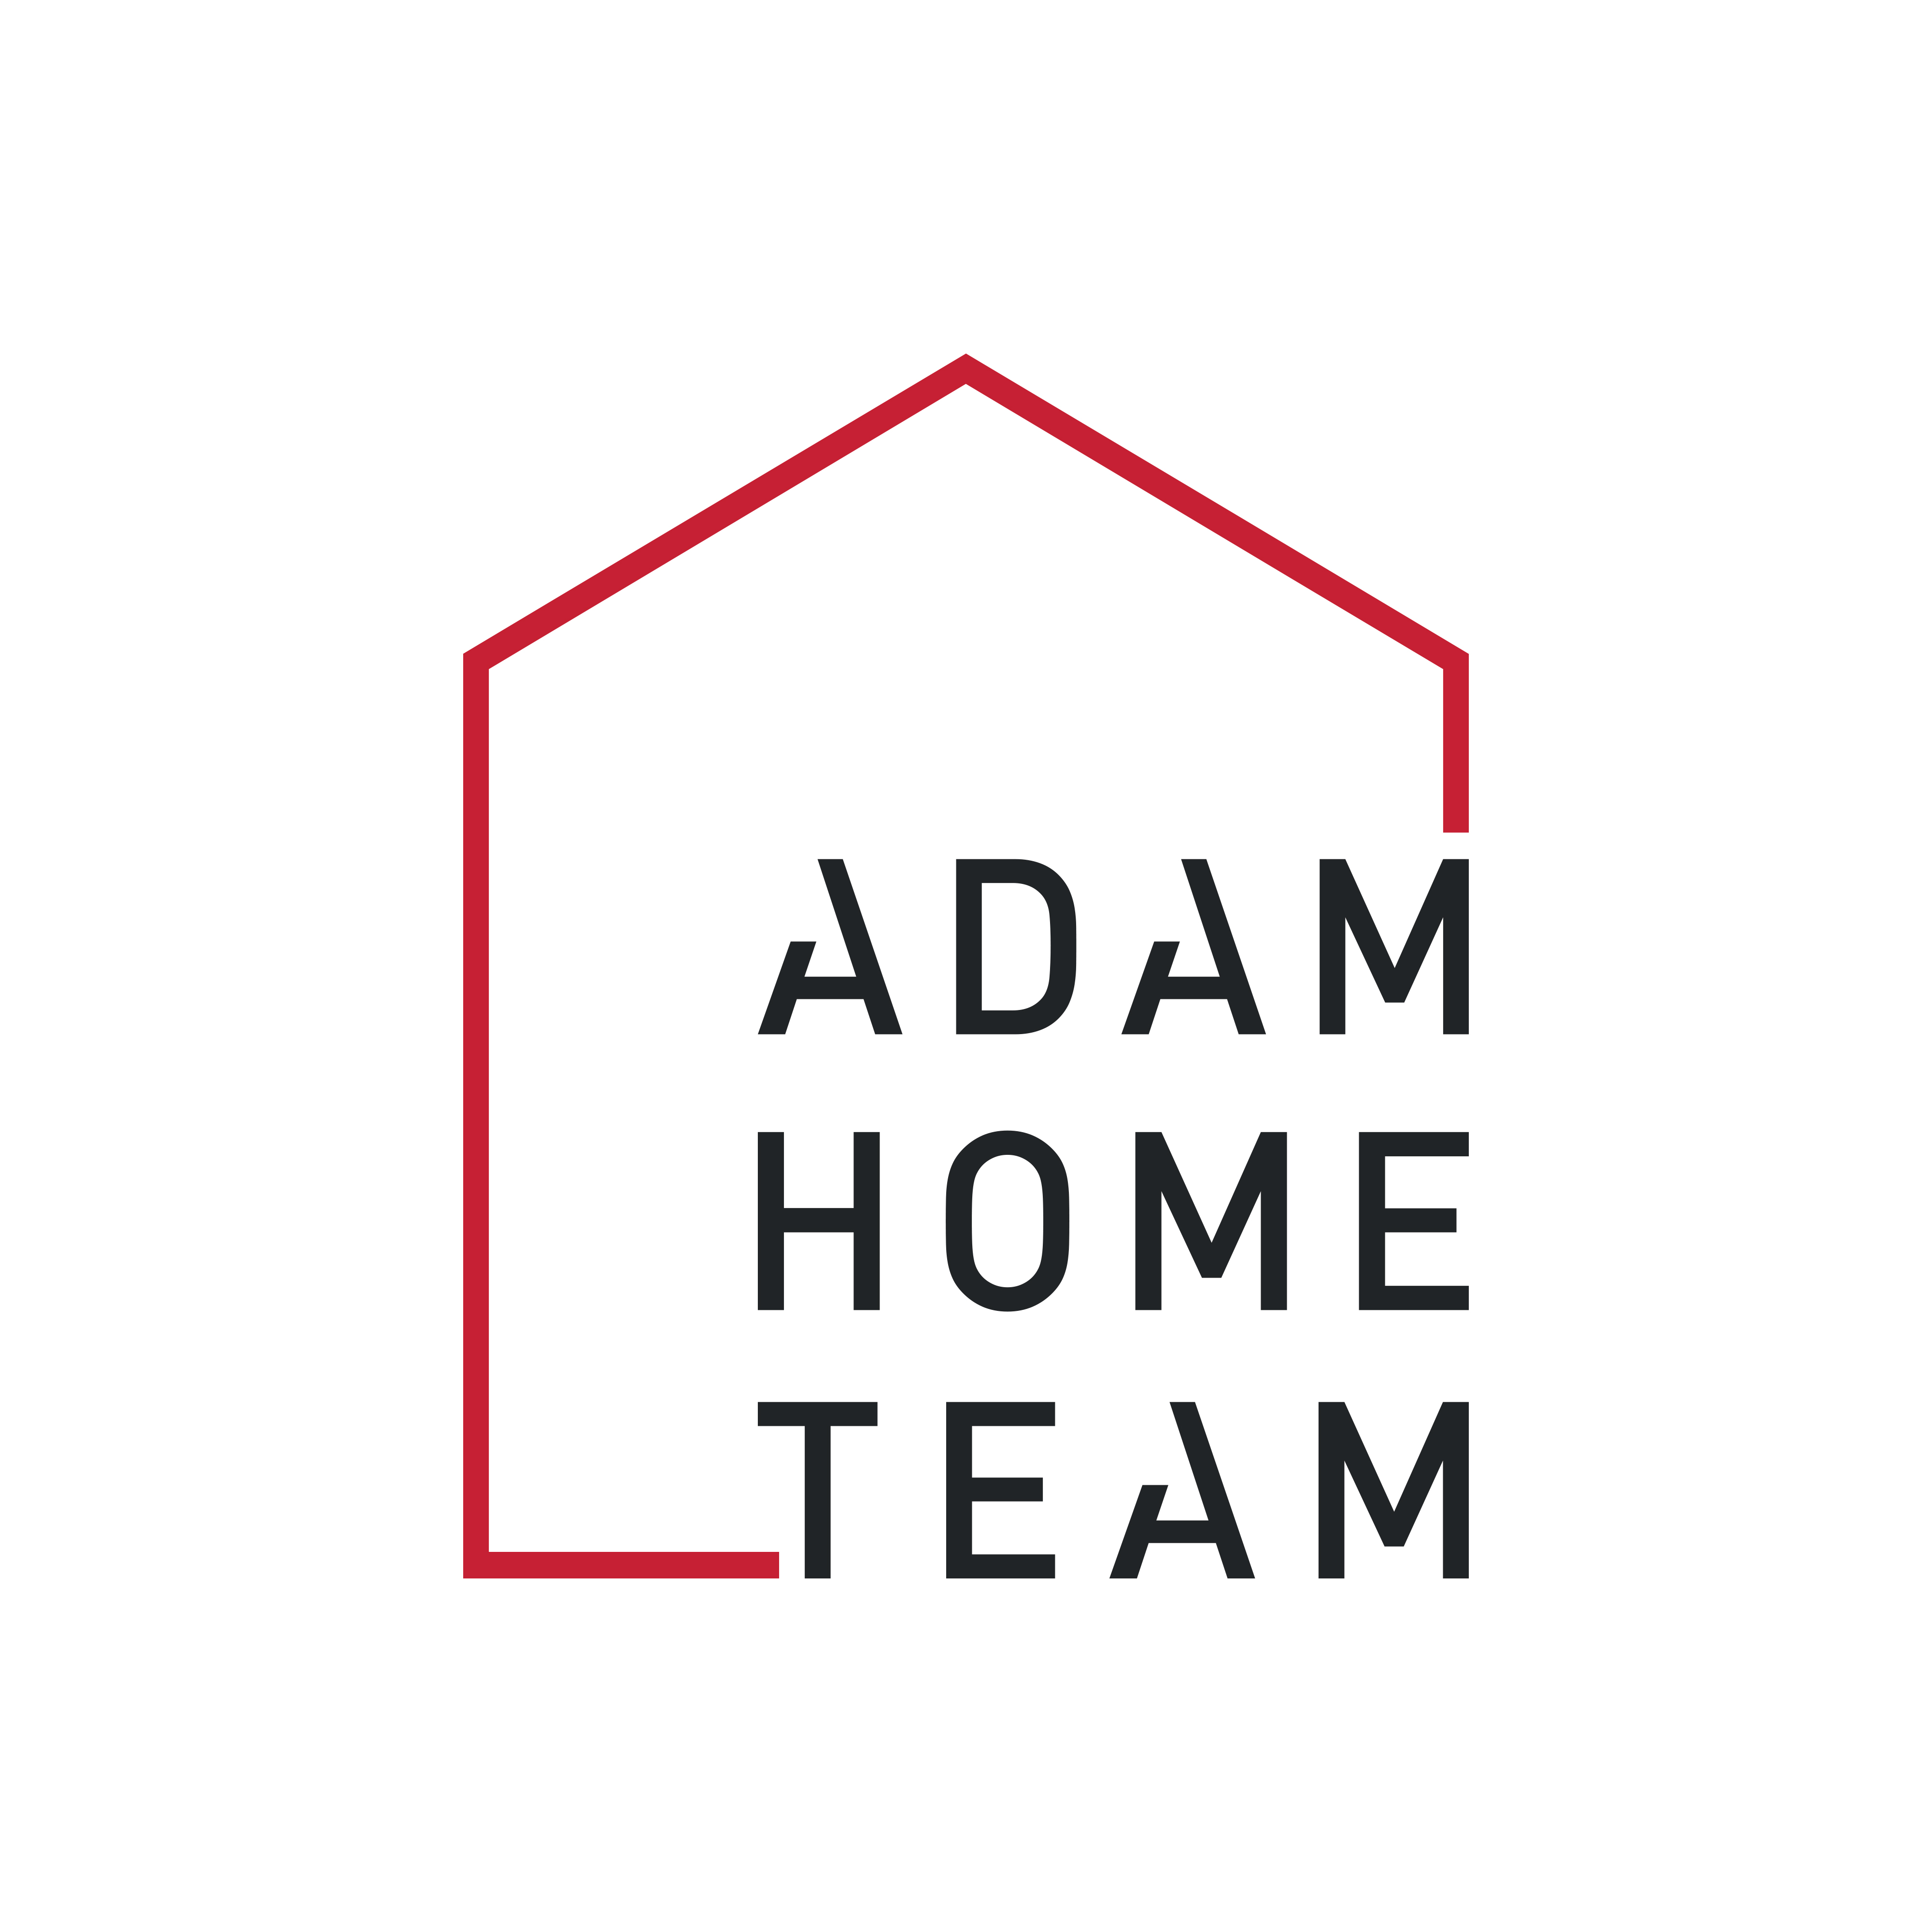 The Adam Home Team logo